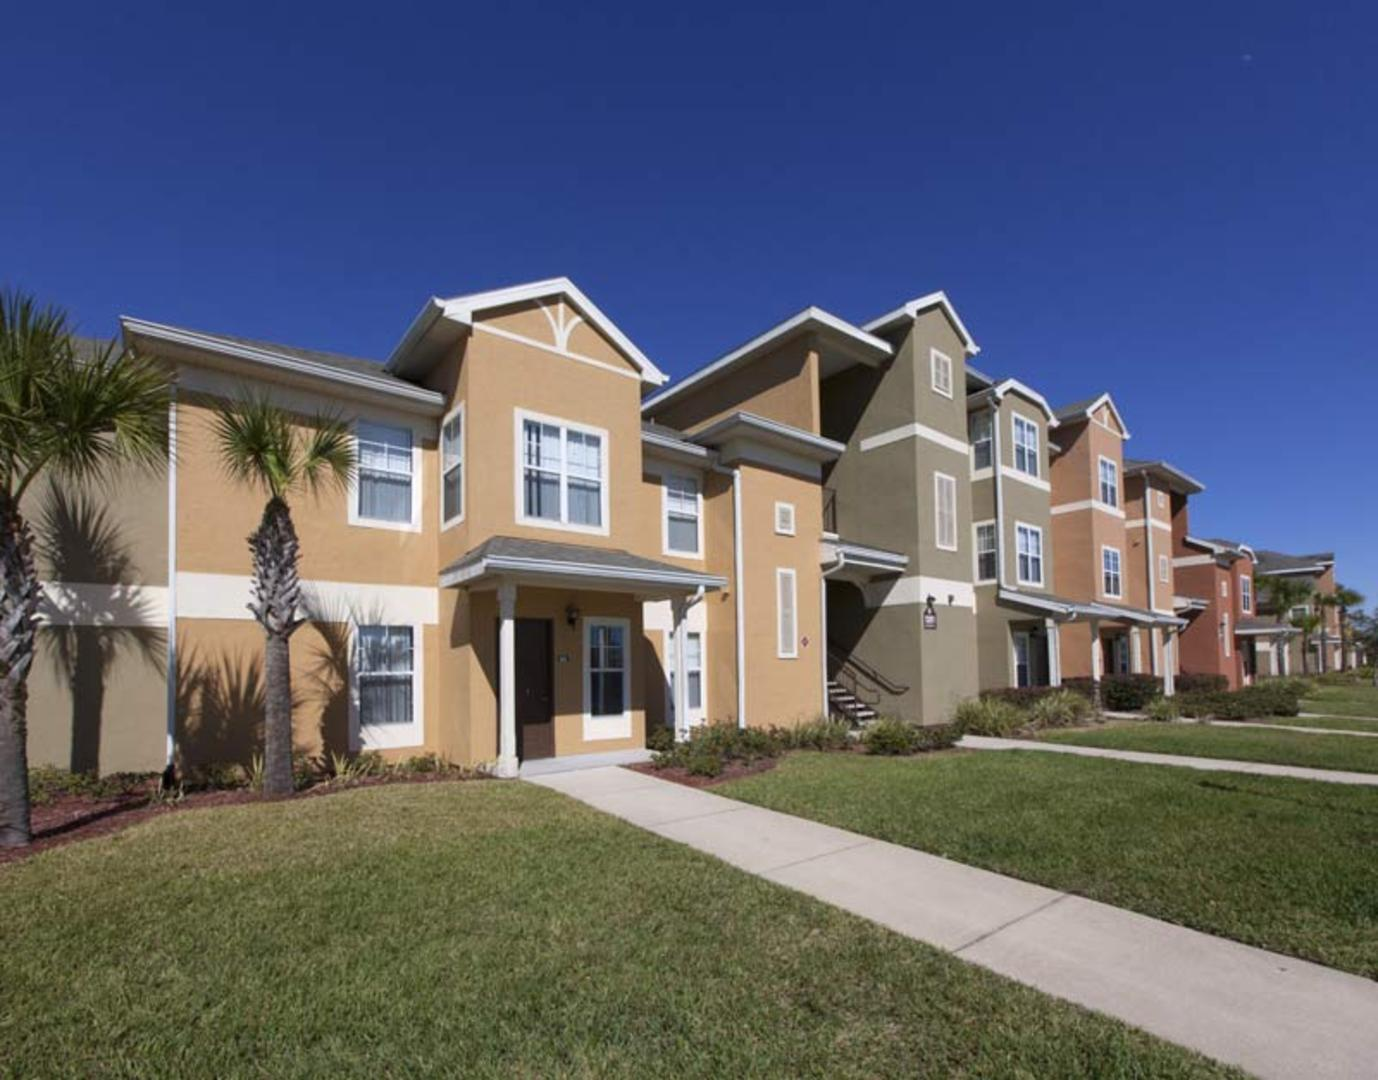 Marvelous Apartments For Rent In Orlando, FL | Pinnacle Pointe   Home